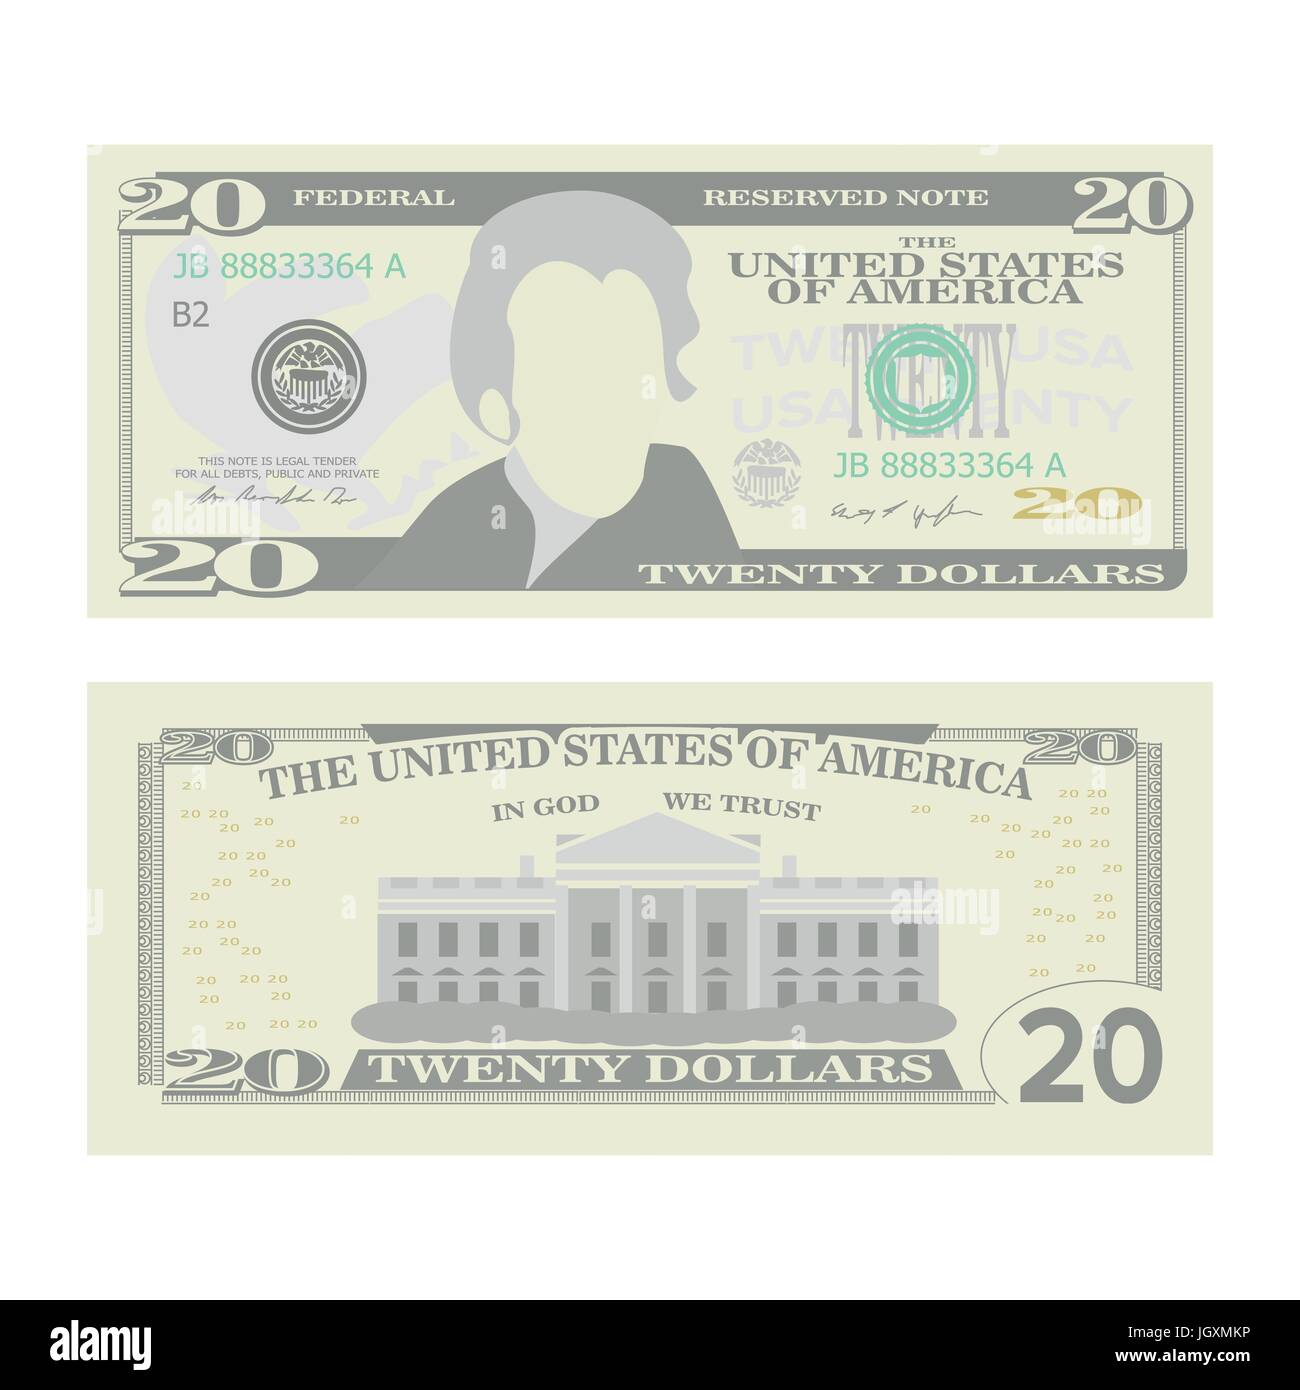 20 Dollars Banknote Vector. Cartoon US Currency. Two Sides Of Twenty American Money Bill Isolated Illustration. - Stock Vector